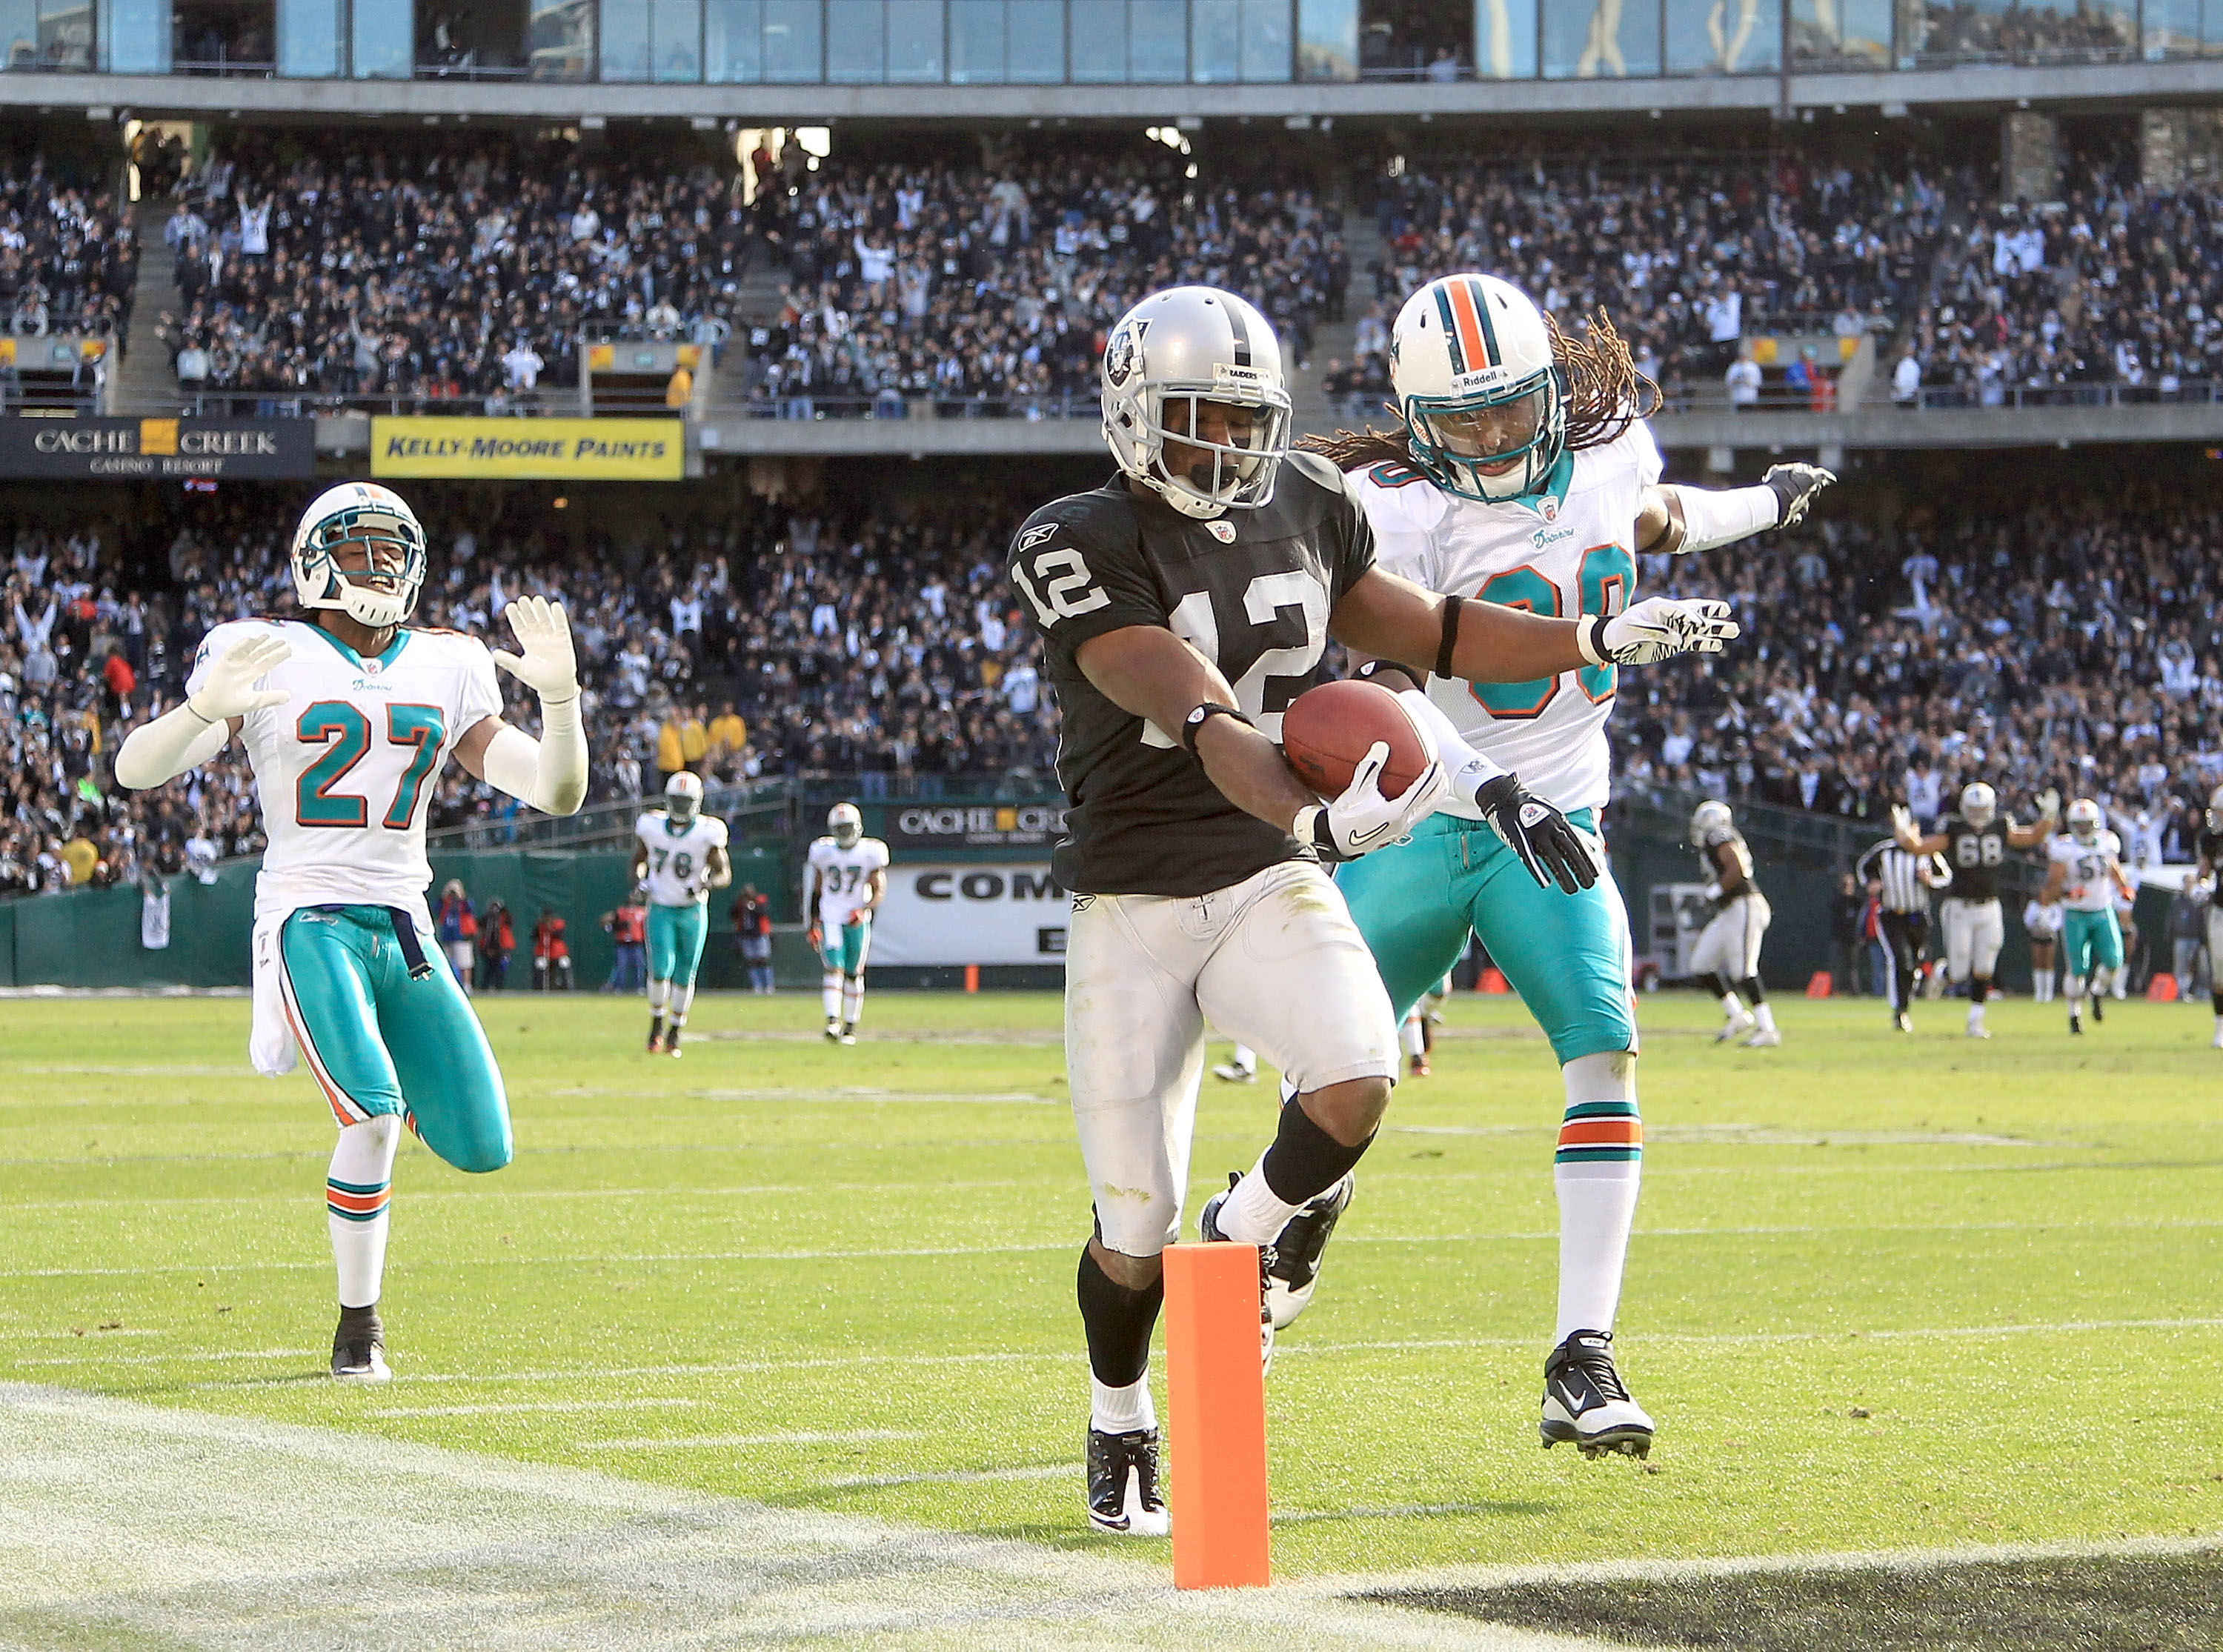 Jacoby Ford has great speed and fights for every ball! A great rookie year!